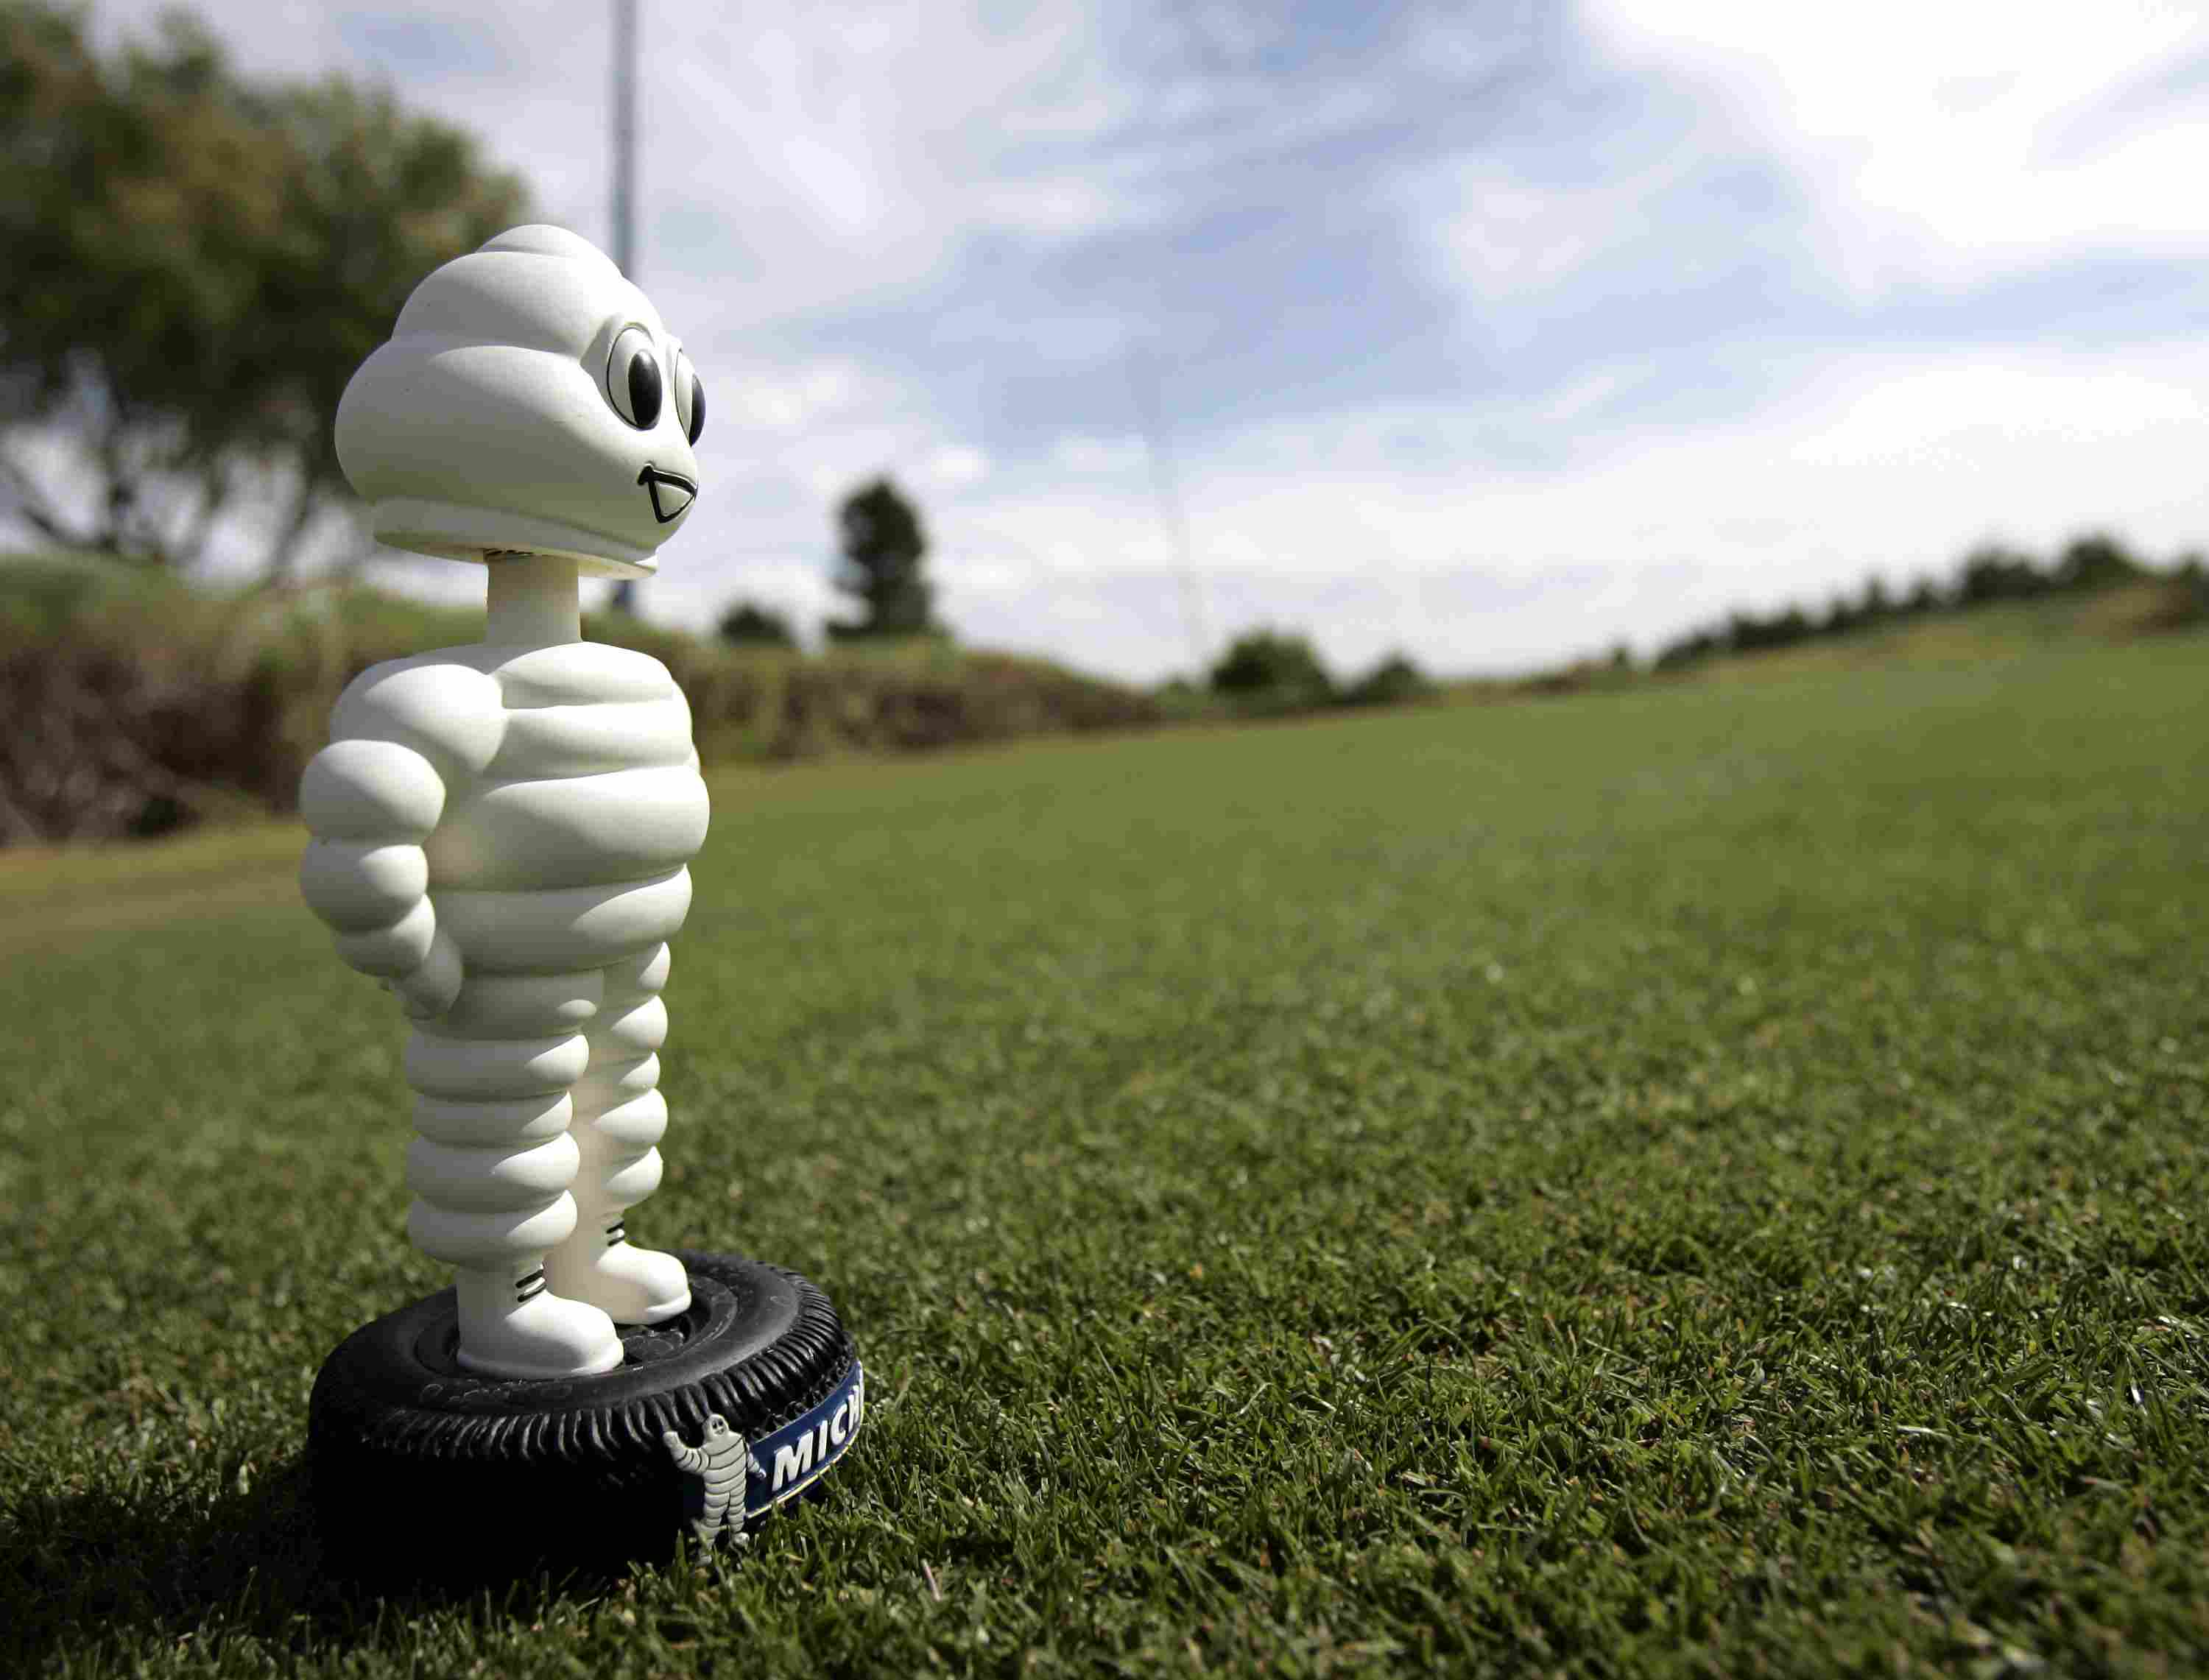 The Michelin Man is a tee marker at the 2005 PGA Tour Michelin Championship